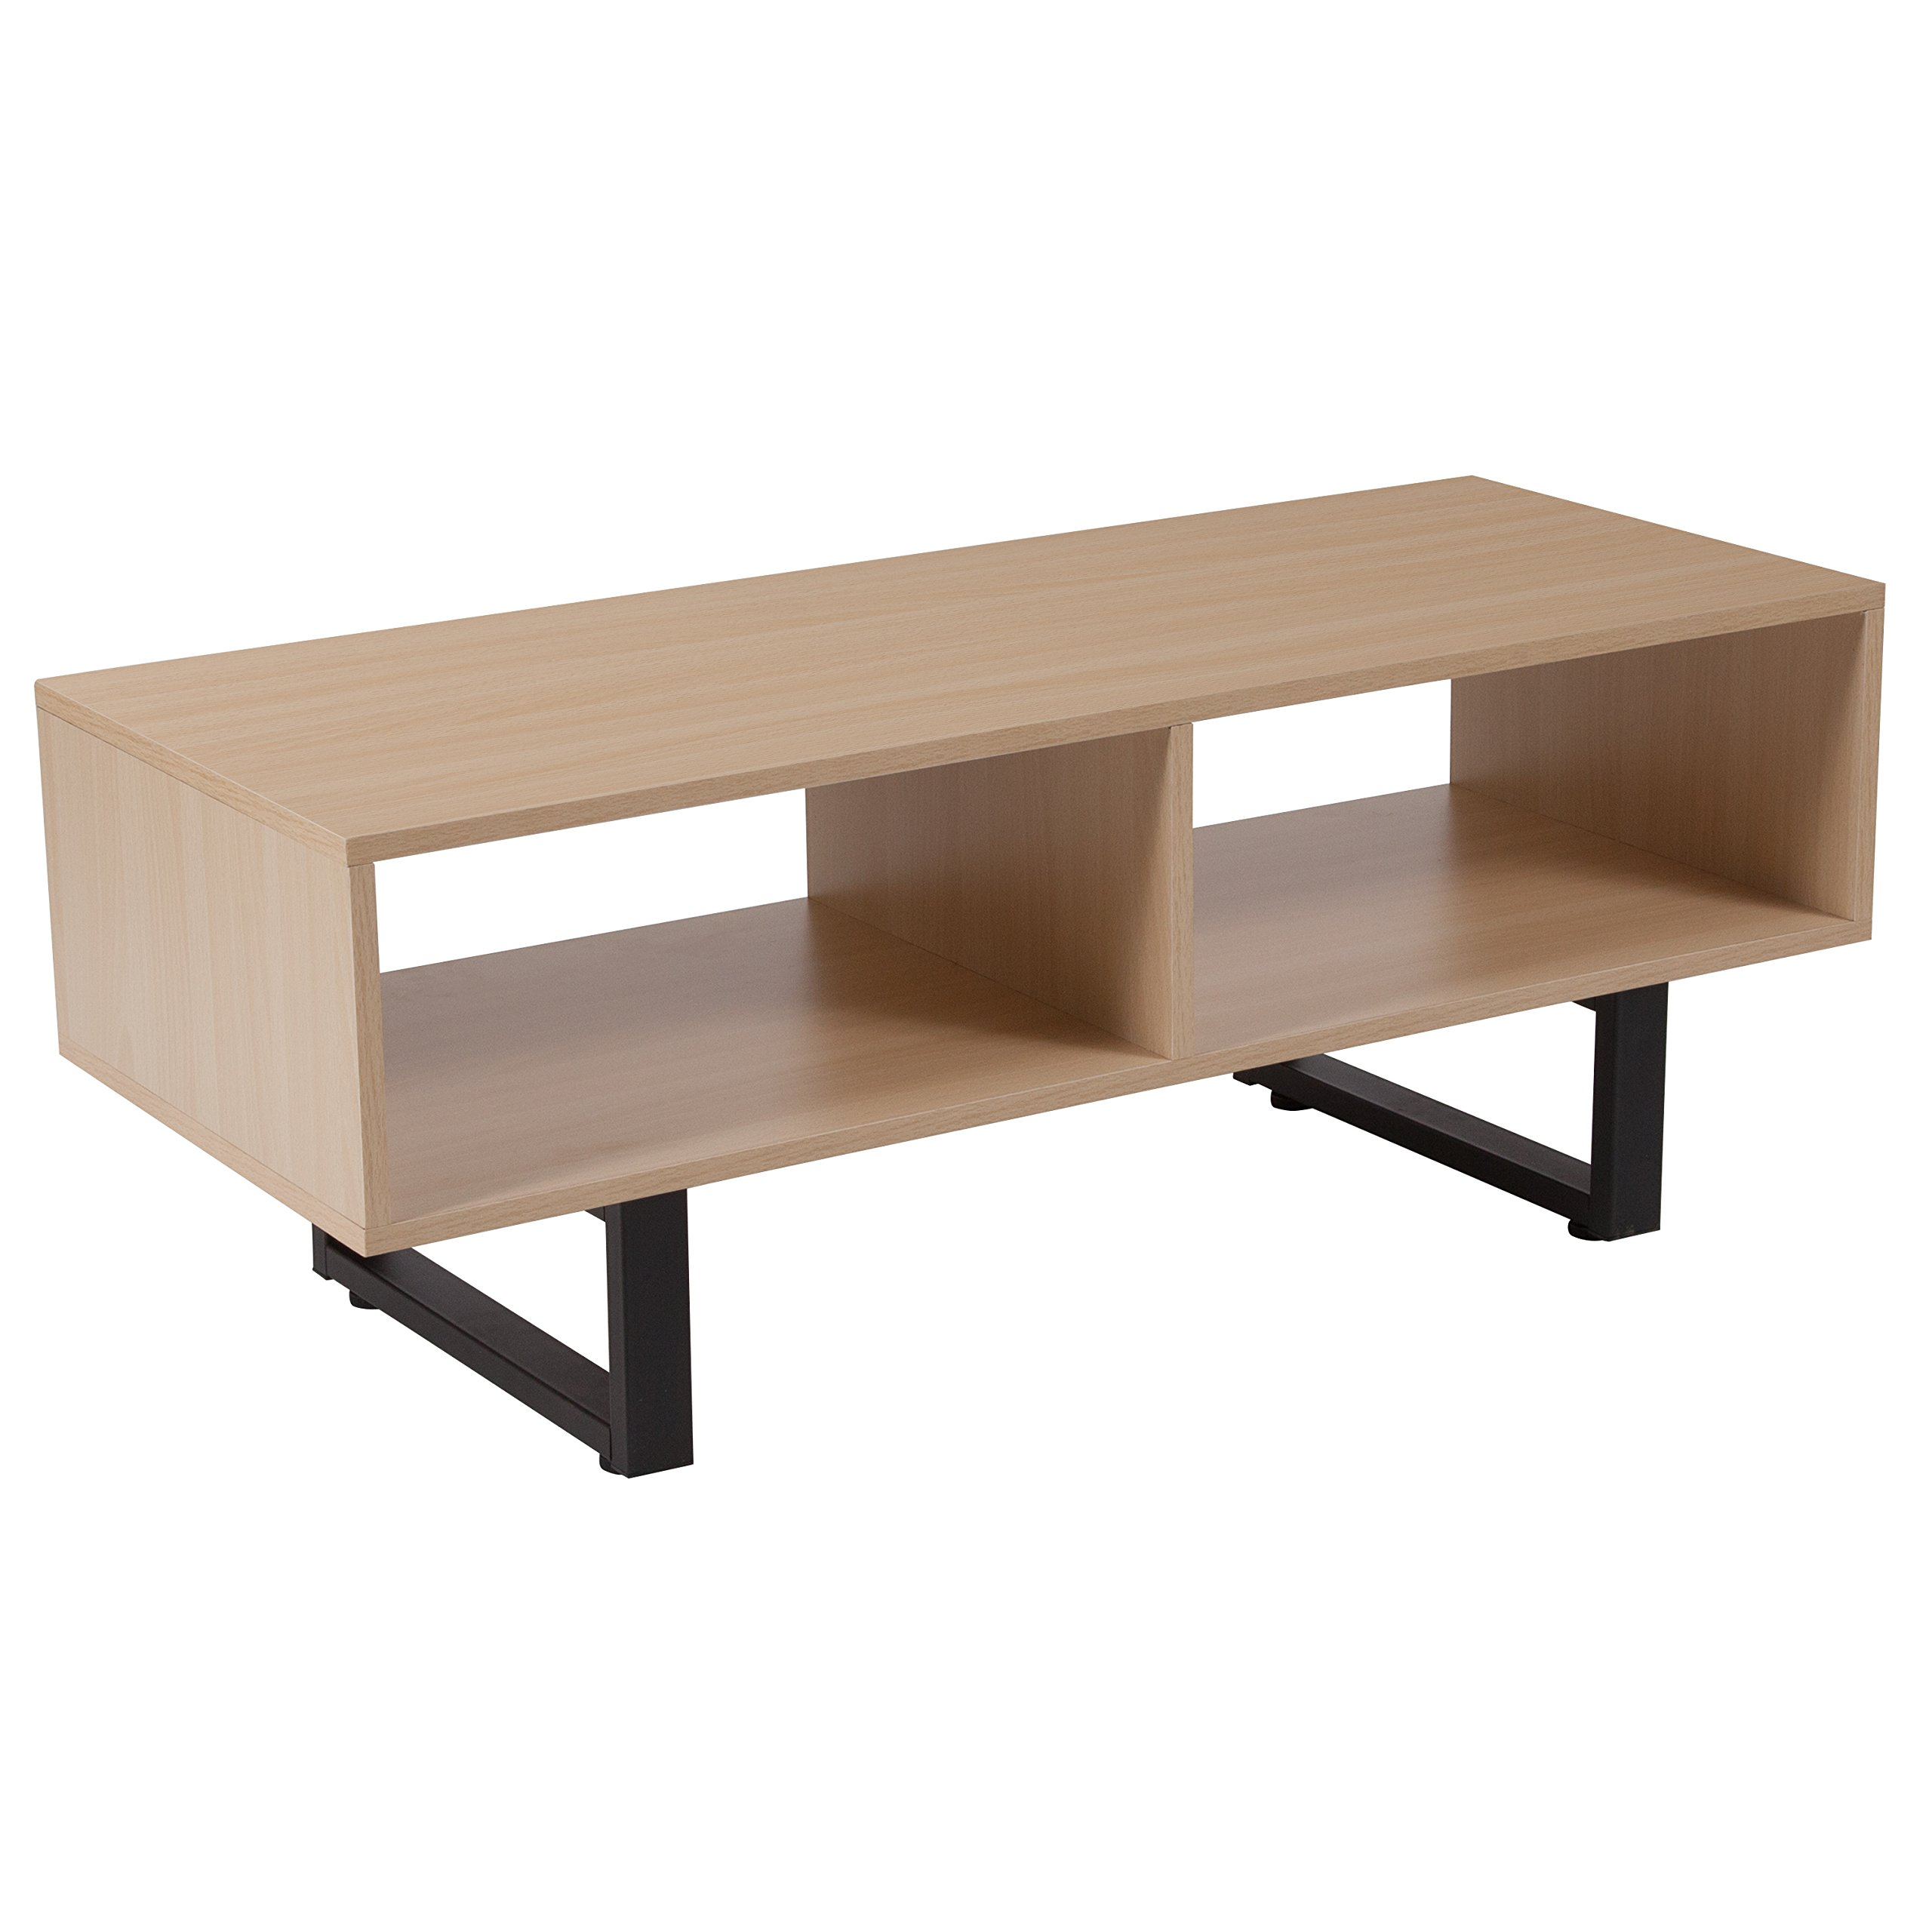 Flash Furniture Hyde Square Collection Beech Wood Grain Finish TV Stand and Media Console with Black Metal Legs by Flash Furniture